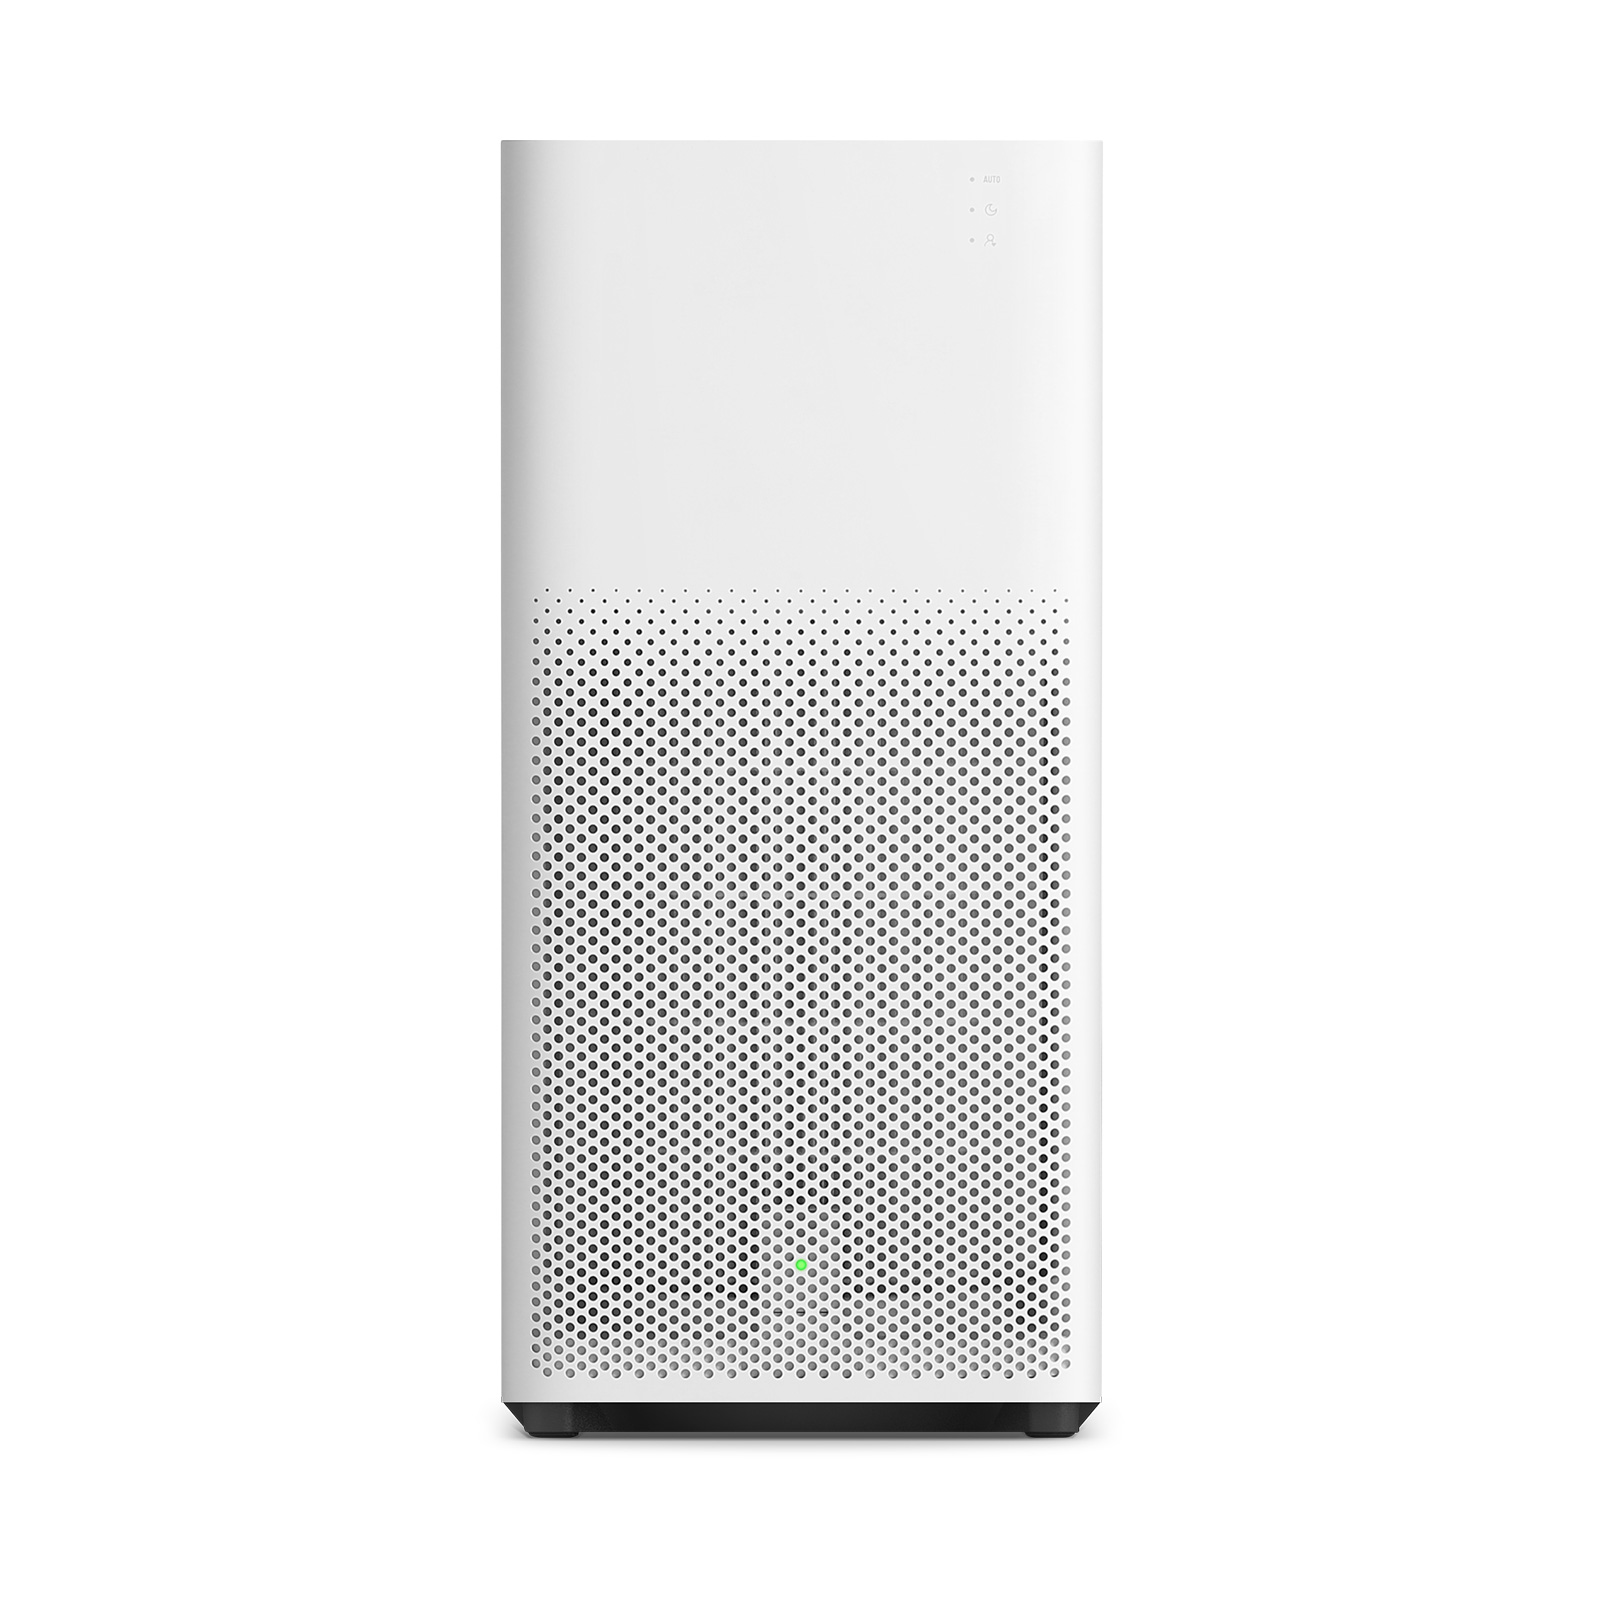 Xiaomi Air Purifier 2 Upgraded Version Intelligent Purifier Free Shipping Send By DHL/Fedex/UPS free shipping 2pcs it8518e cxa hxs hxa etc please leave a message need to specify the version otherwise will randomly send